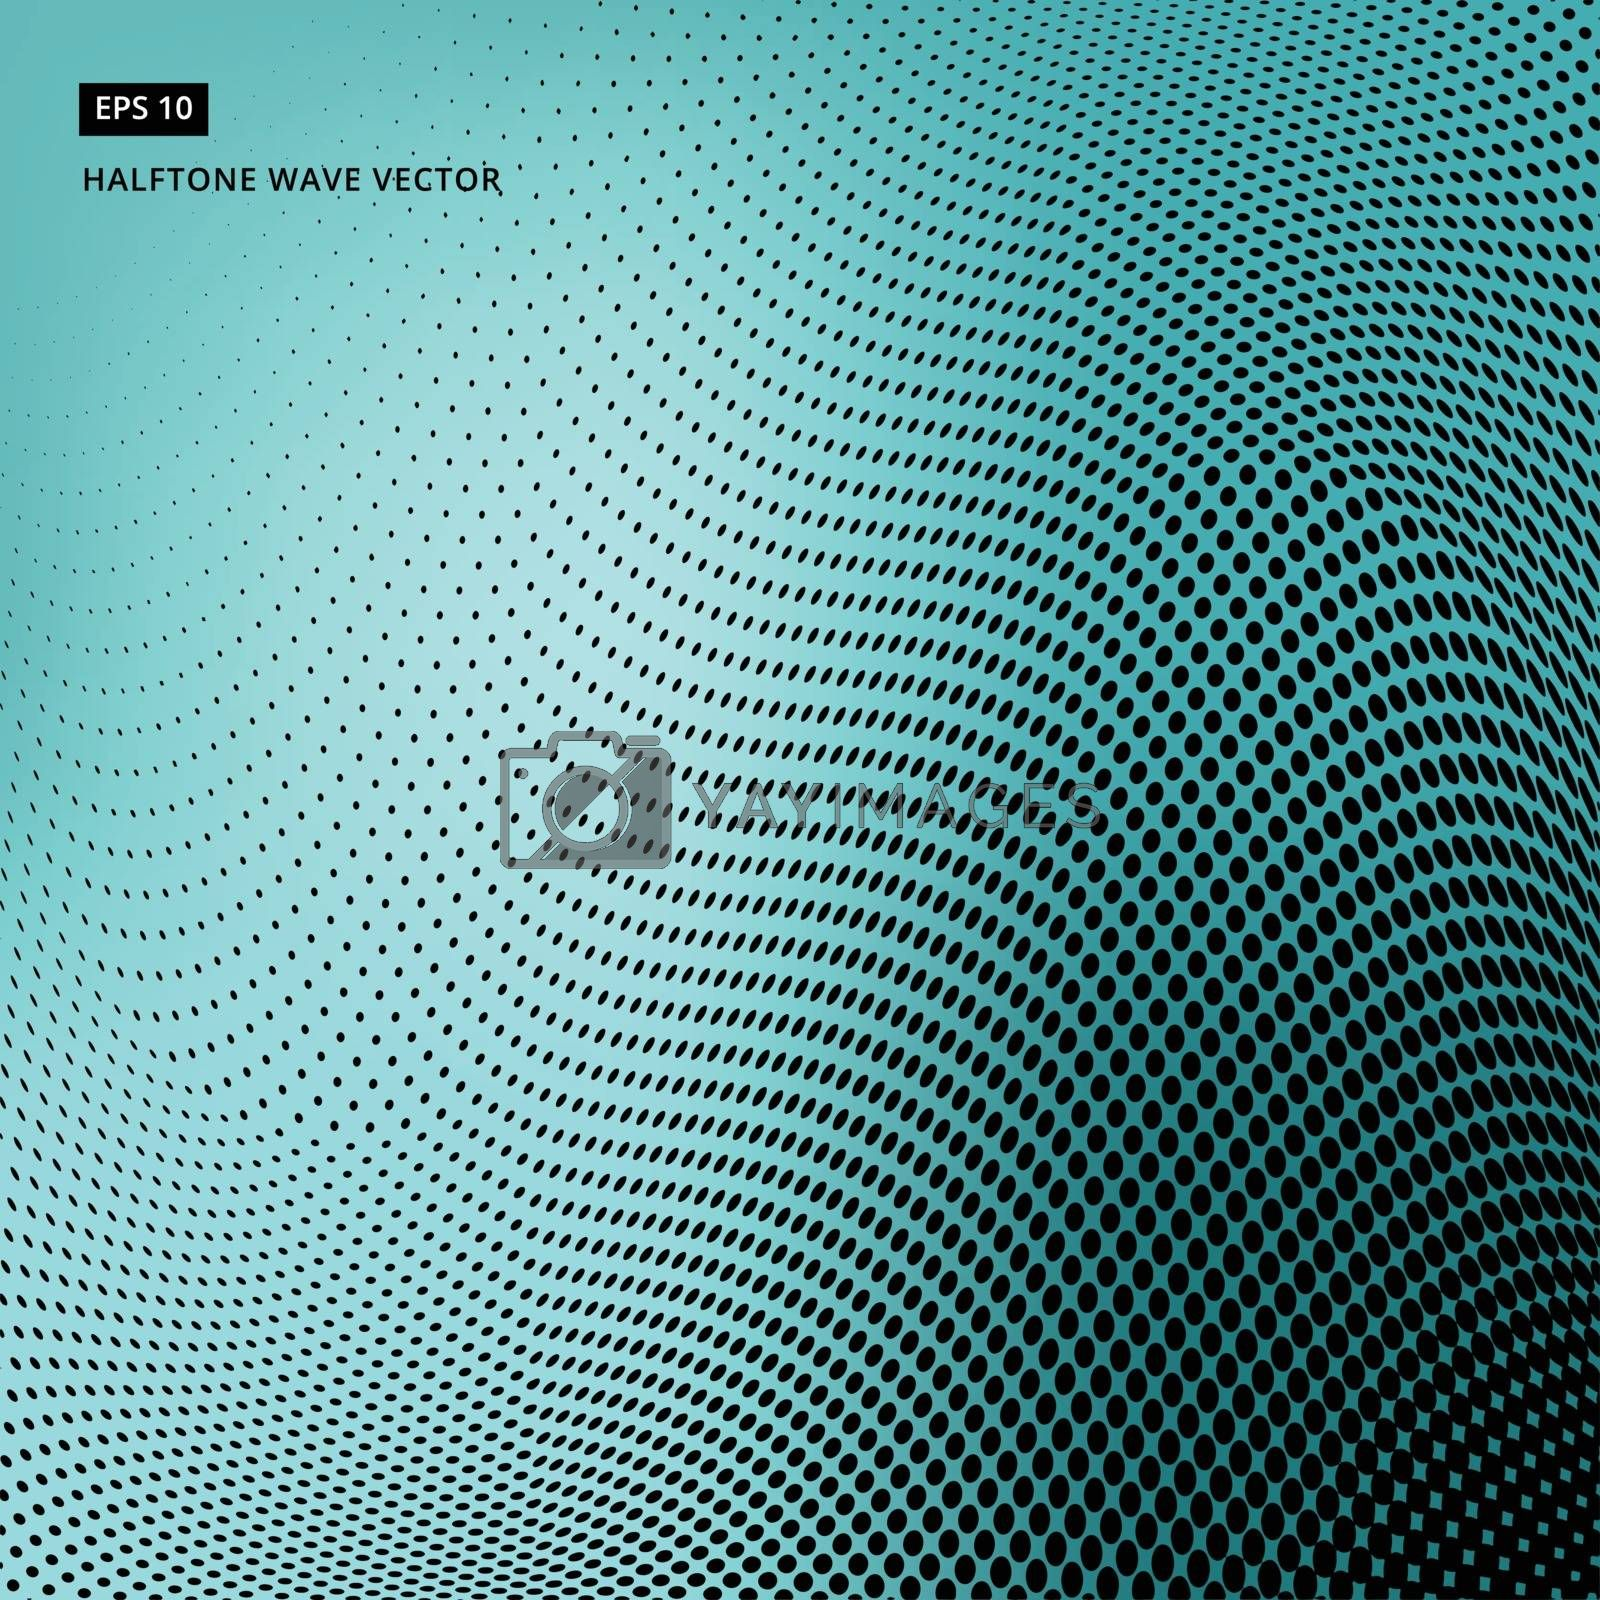 Abstract dotted background. Halftone wave effect vector turquoise background